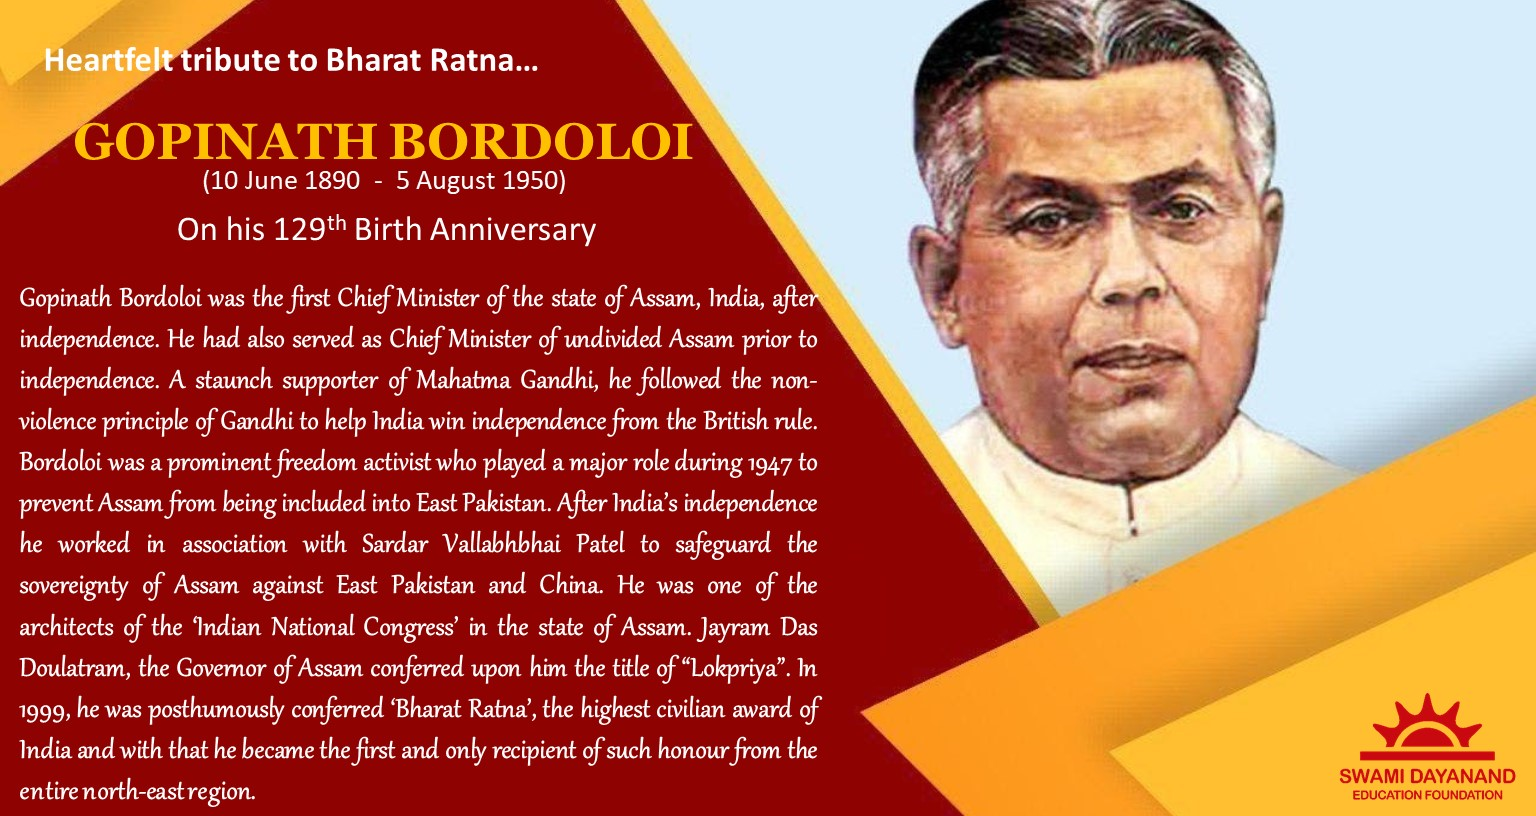 GOPINATH BORDOLOI  (10th June 1890 - 5th Aug 1950)